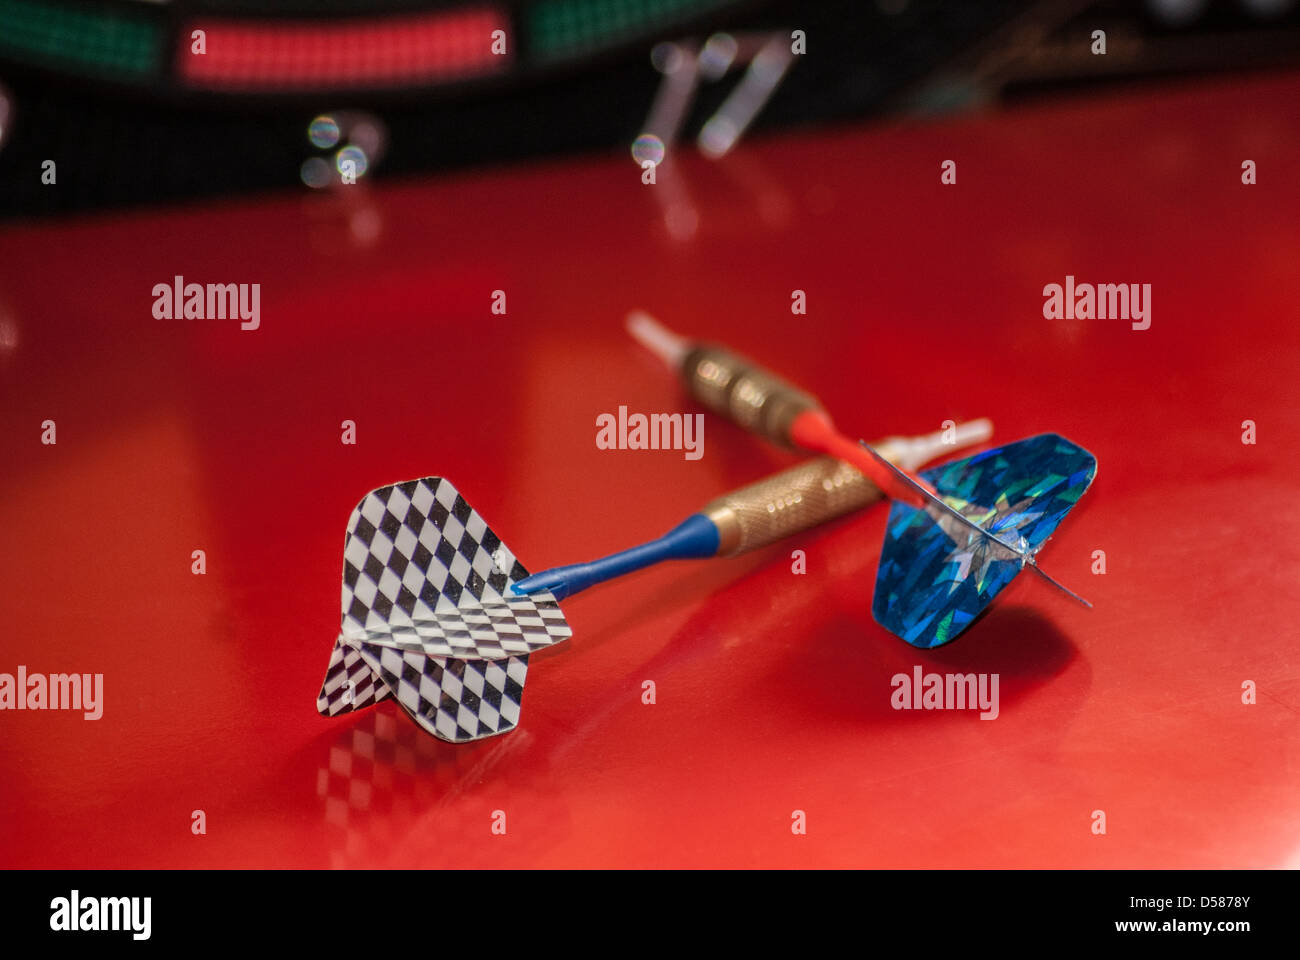 Arrow for play a game - Stock Image